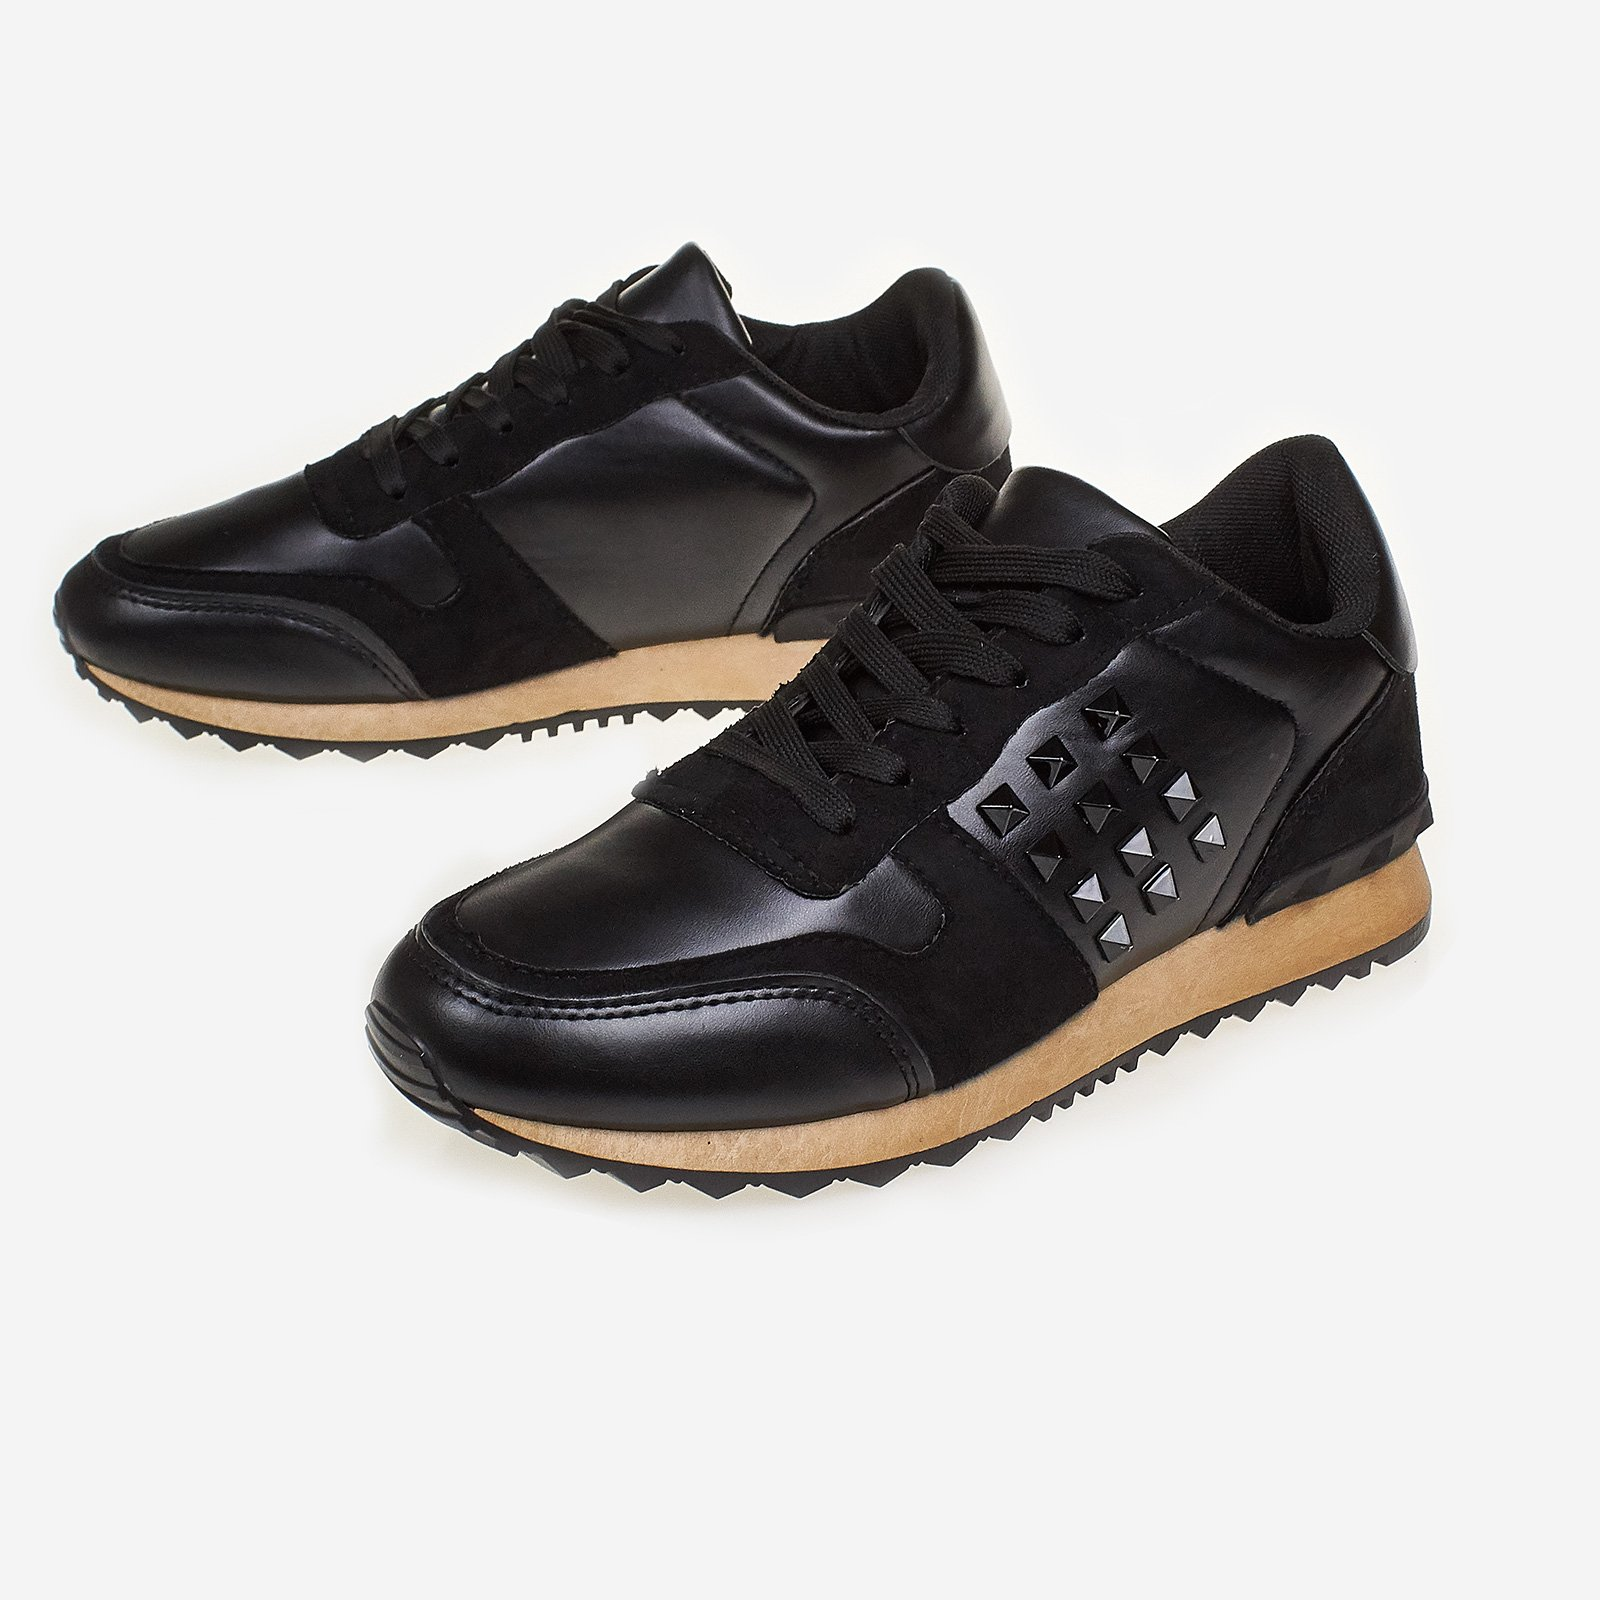 Franca Studded Trainer In Black Faux Leather